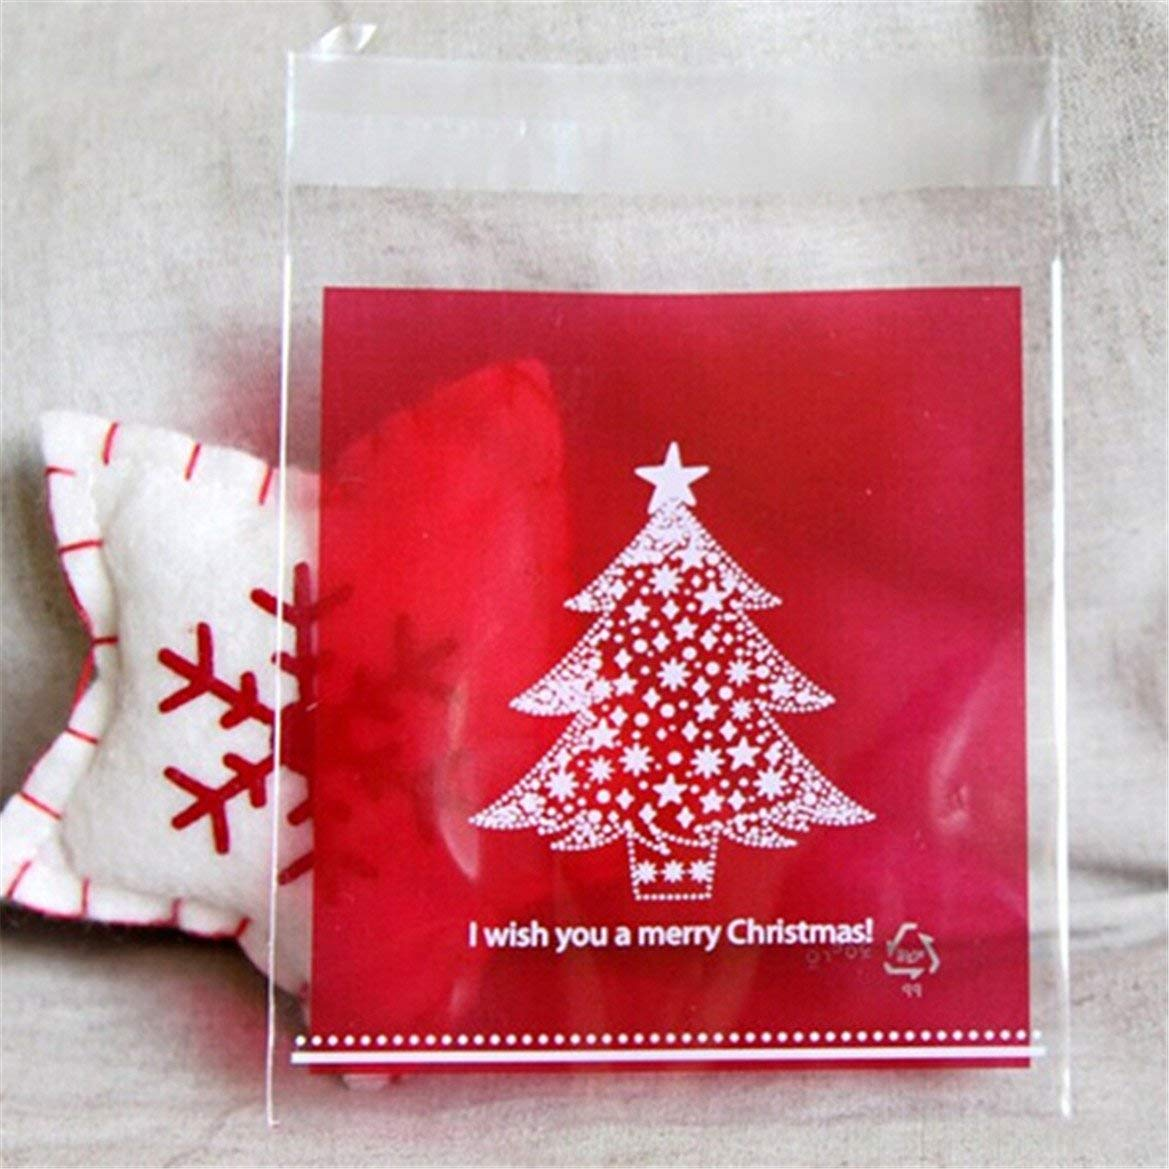 Yevison 100pcs Merry Christmas Red and Green Christmas Tree Cookie Packaging Plastic Bags for Biscuits Cake Baking Package Durable and Useful